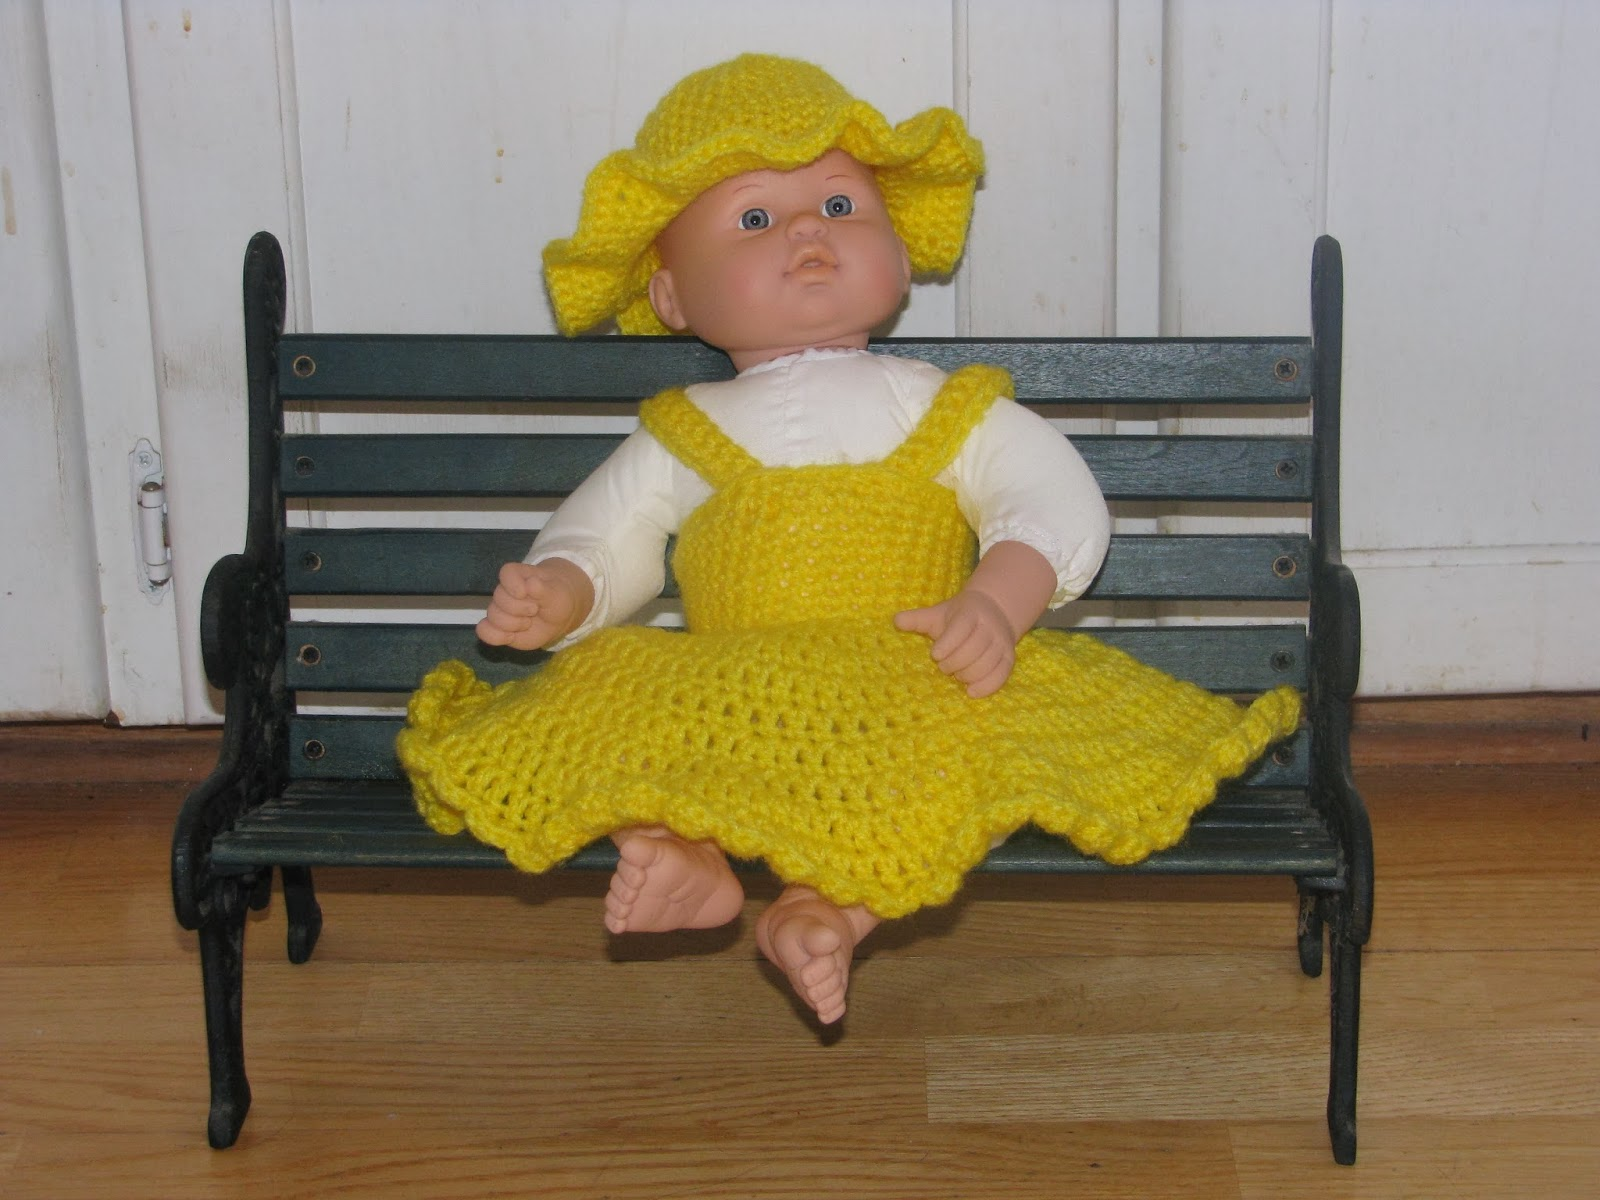 Craft attic resources 15 inch doll soft bodied mary maxim for 5 inch baby dolls for crafts